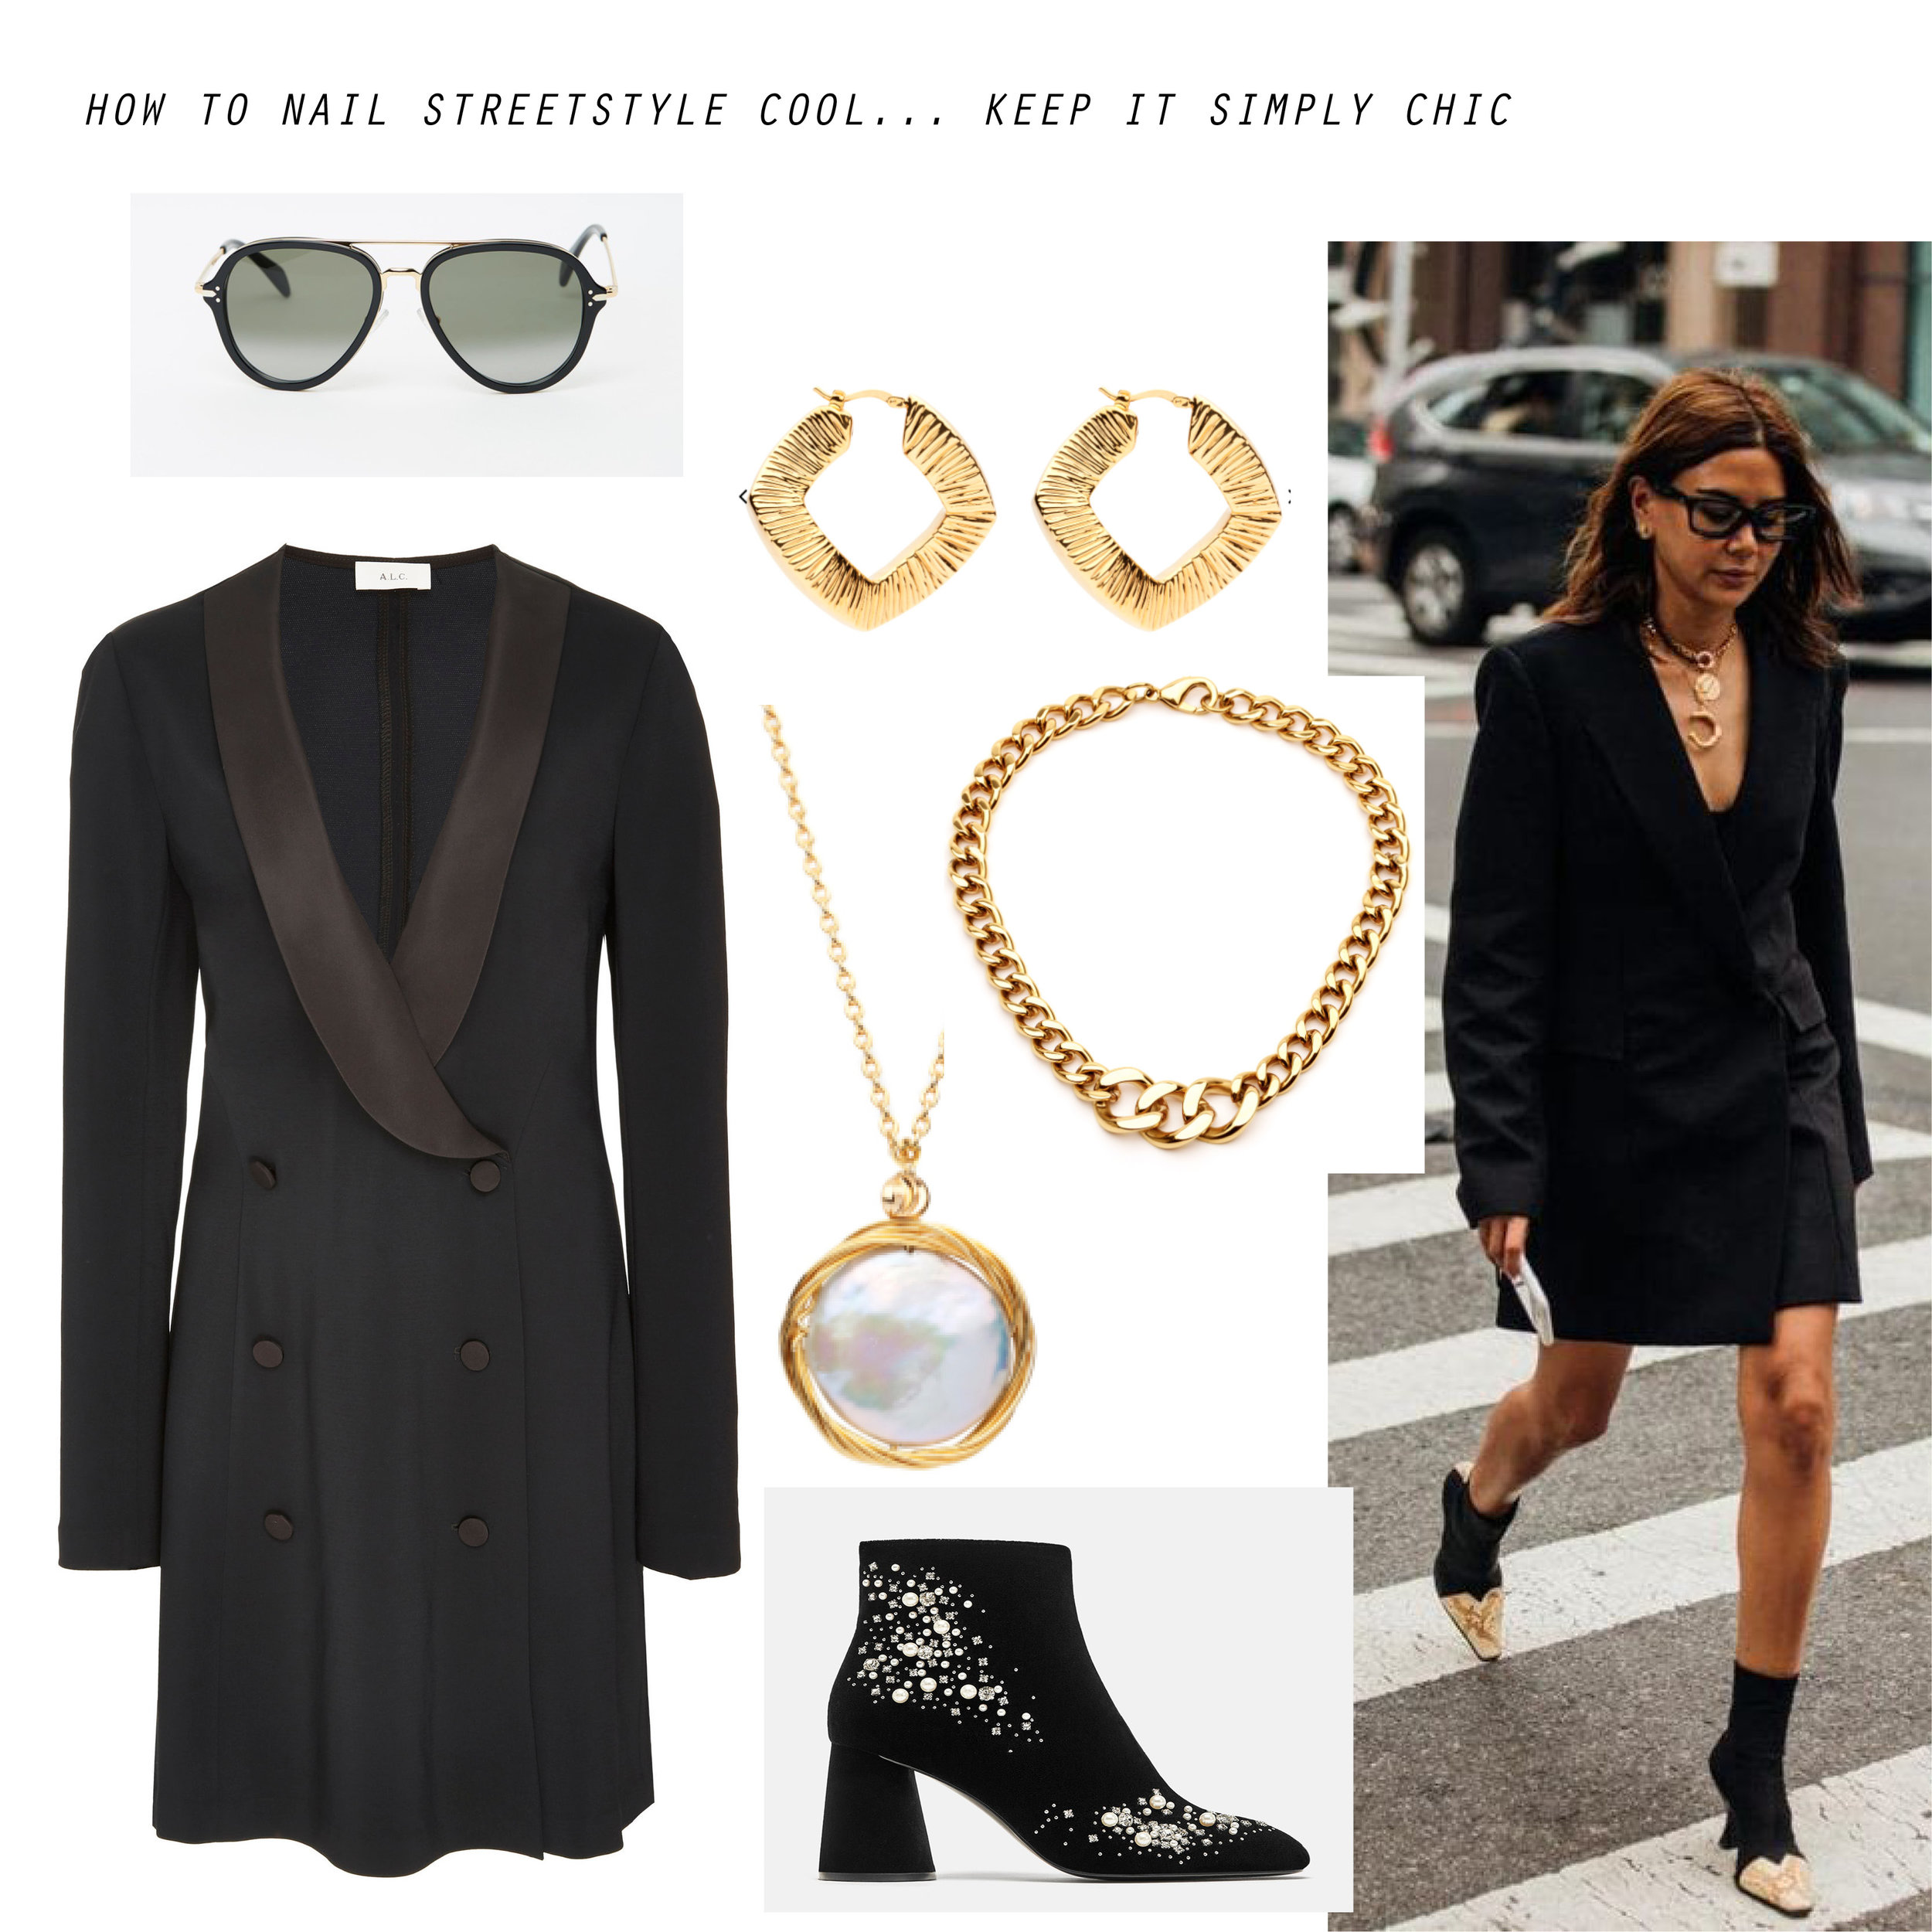 Image courtesy of Pinterest  2. Simply Chic  Shop The Look: A.L.C Tuxedo dress, $  759.67   Celine sunglasses, $630   Amber Sceats collar, $83   Amber Sceats pearl necklace, $179  Zara boots, $119